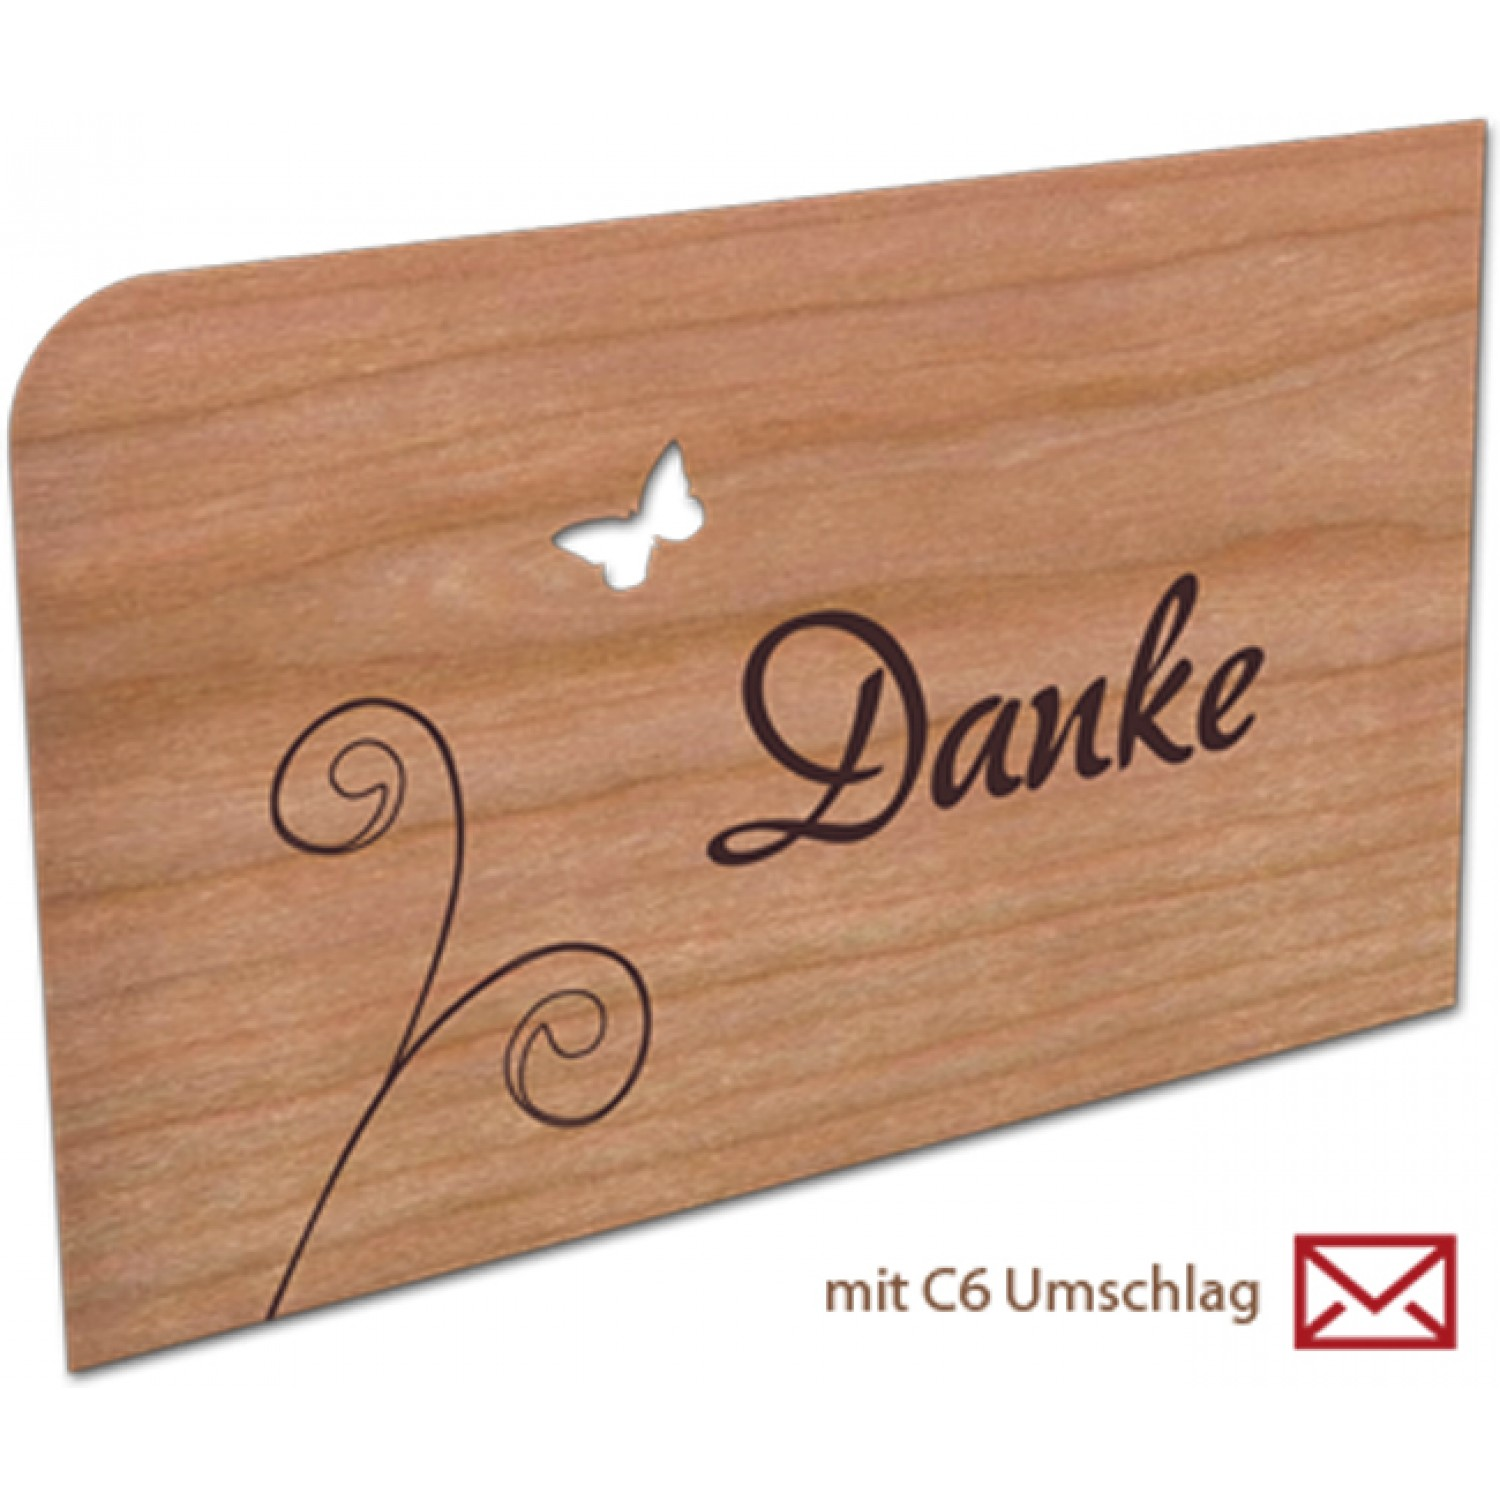 Greeting card | postcard made of wood – Thanks